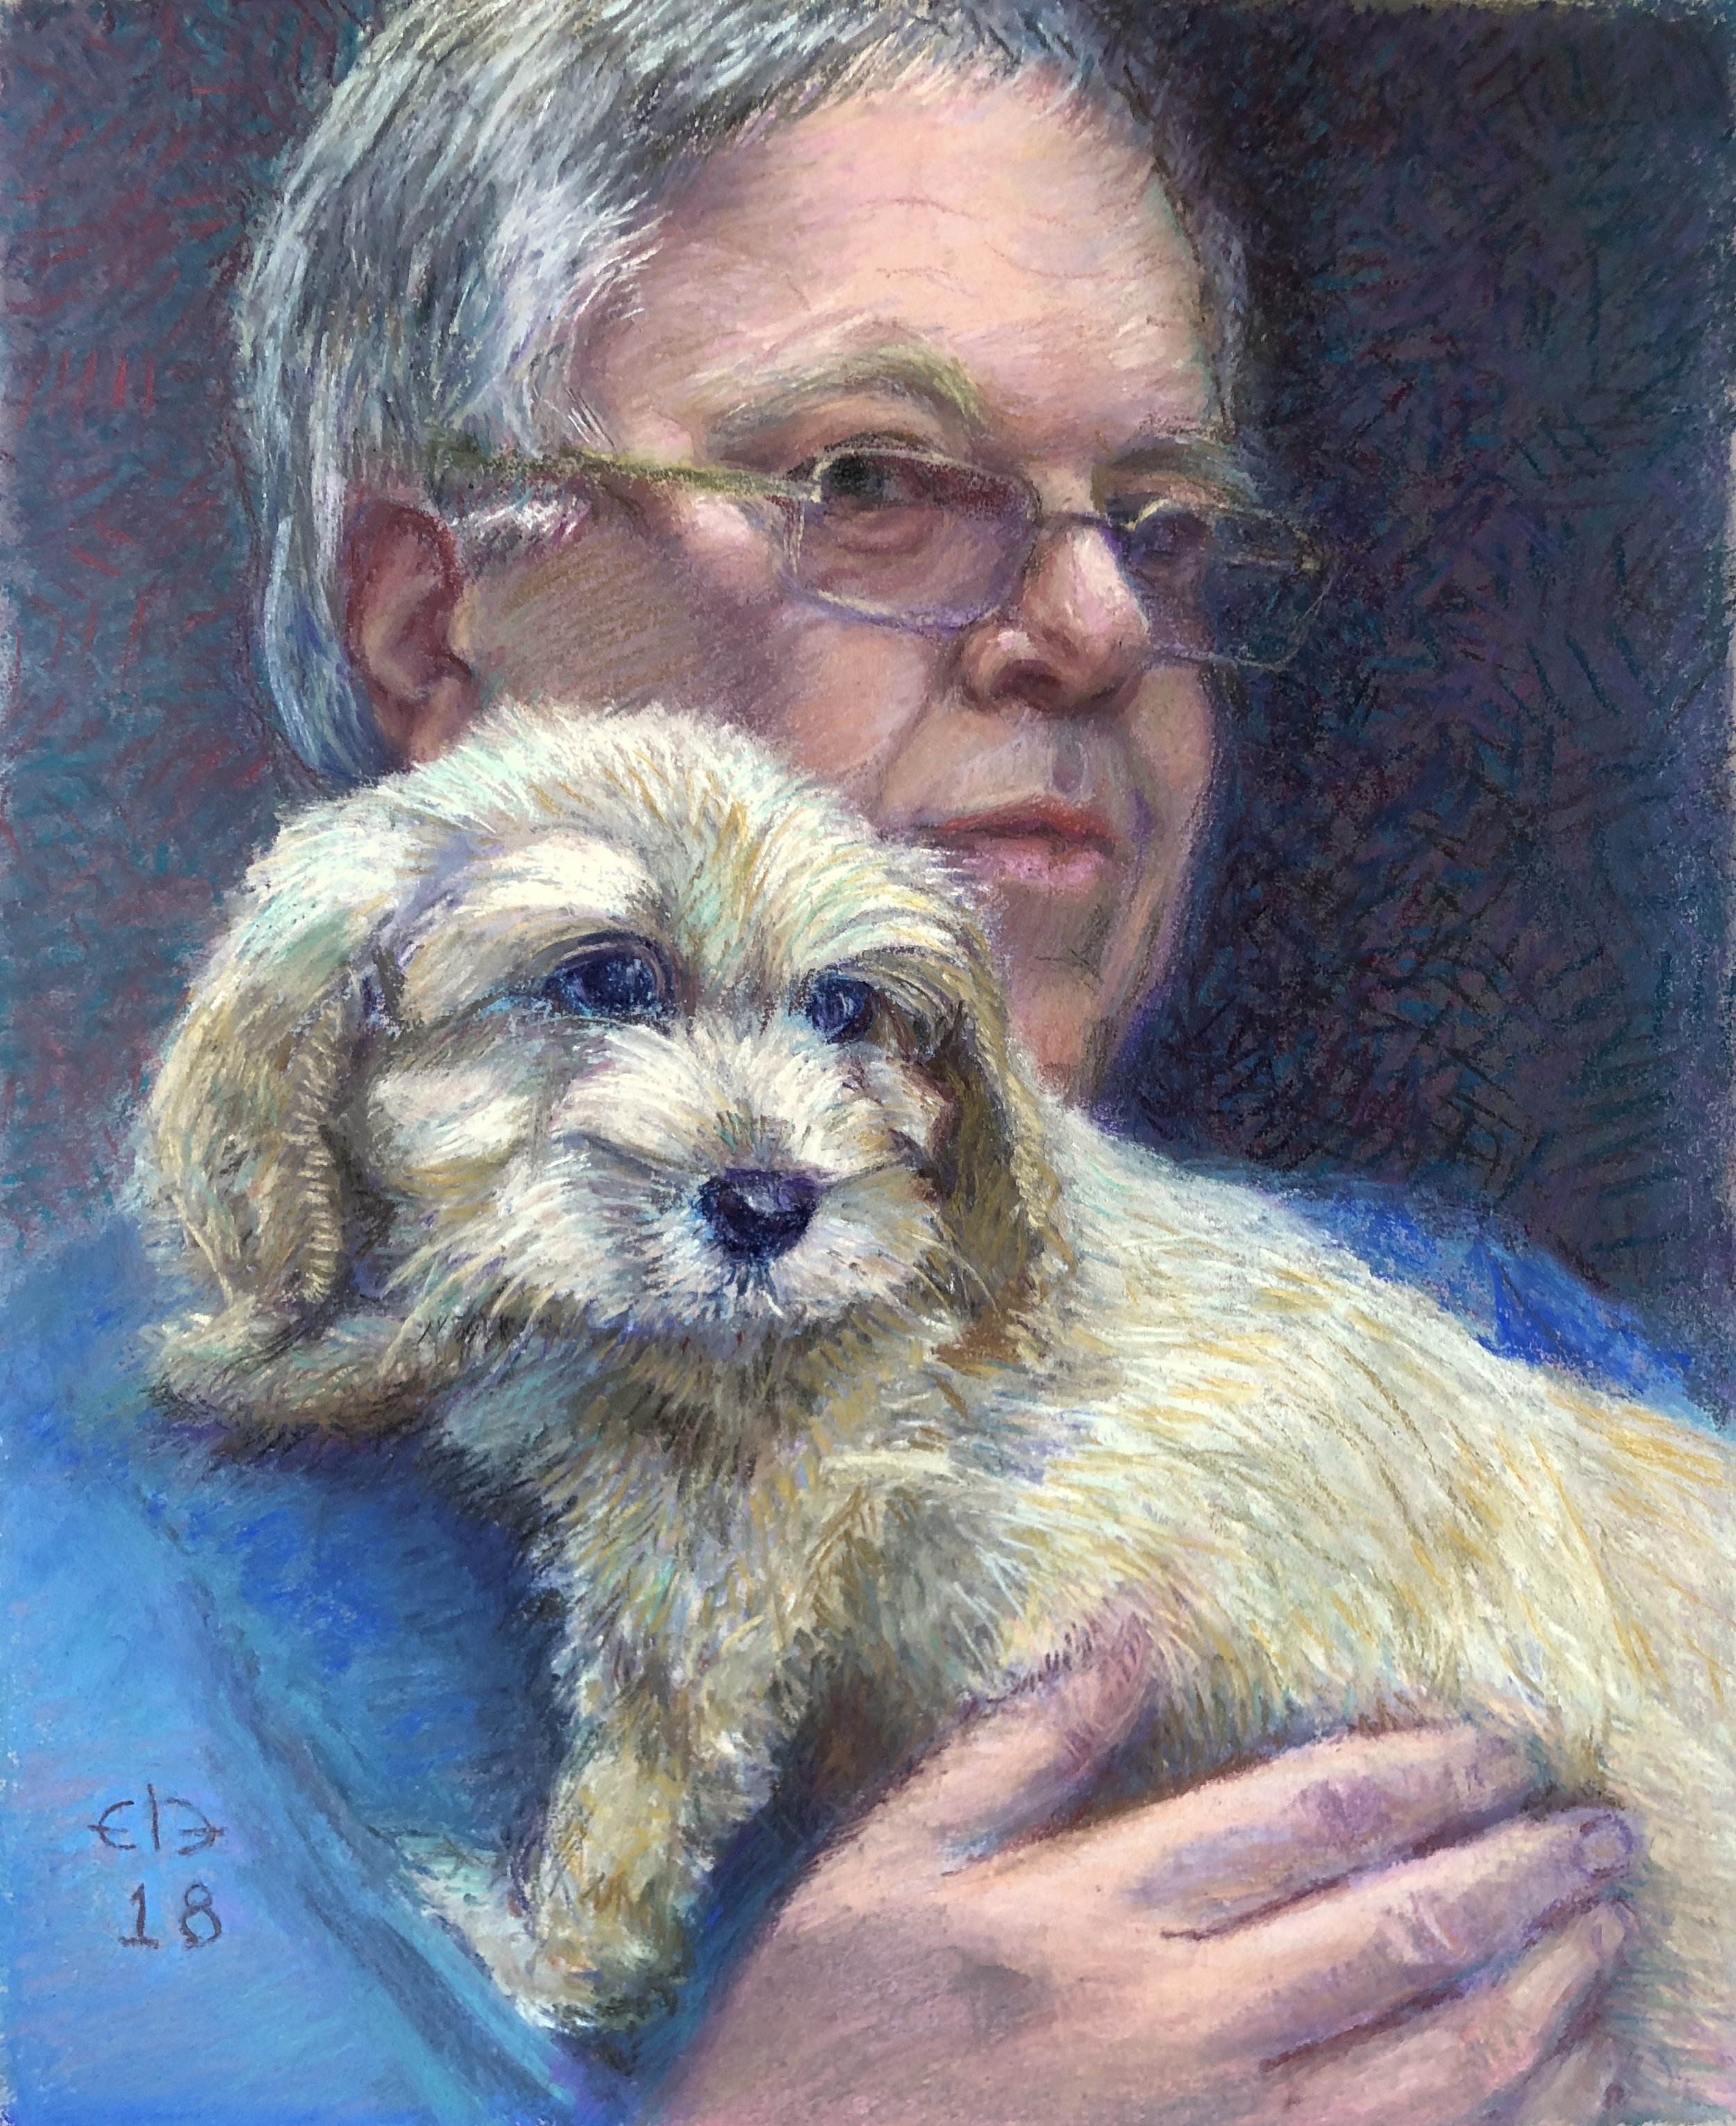 Myles and Doug the Pup (2018) [Private Collection]